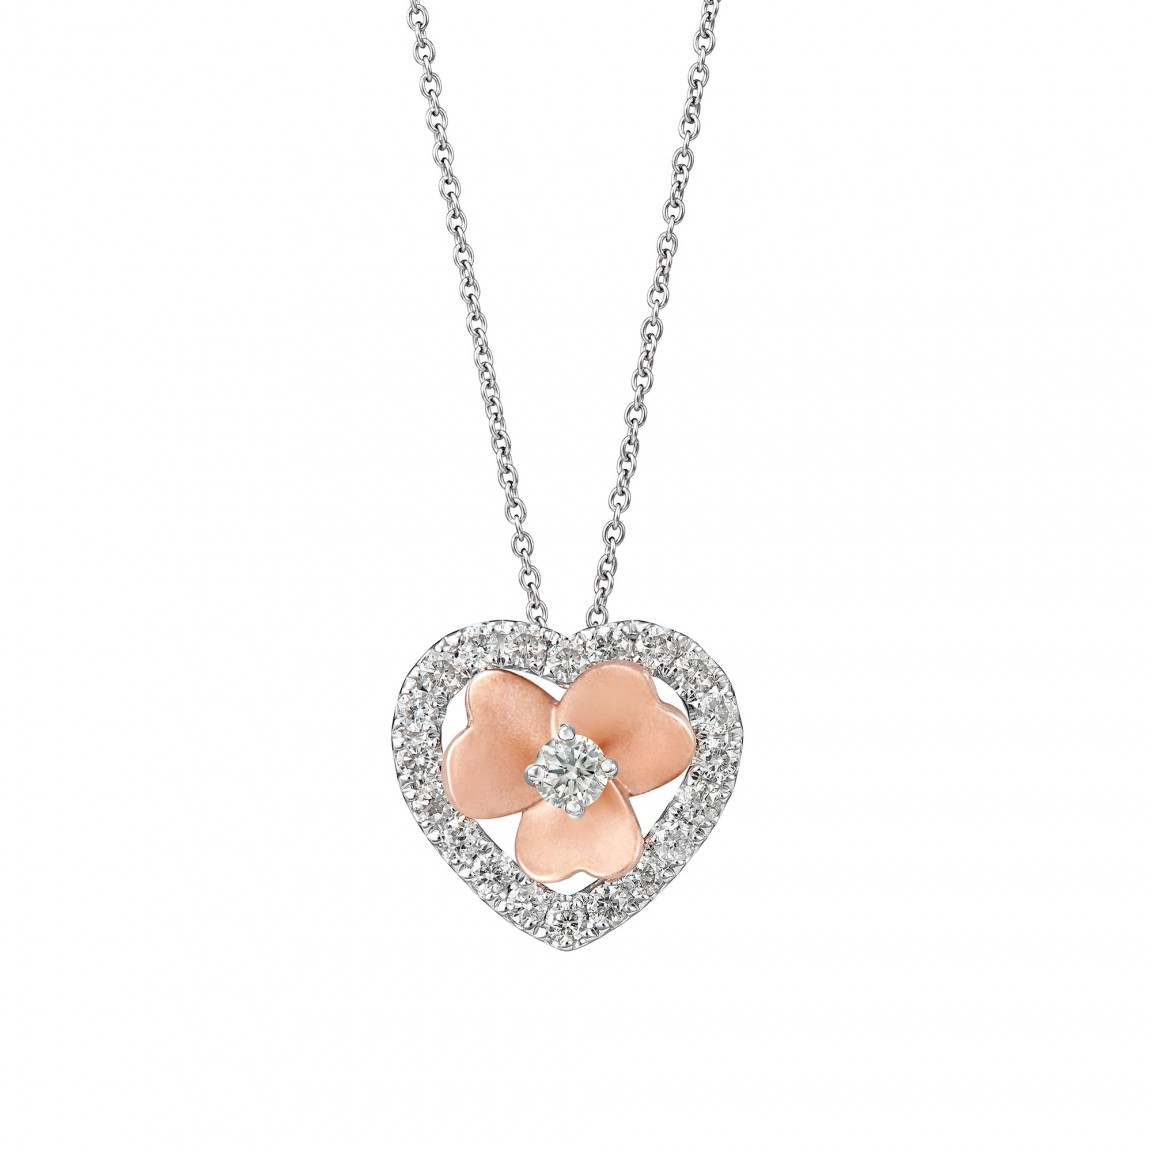 LoveStruck Diamond Pendant Necklace